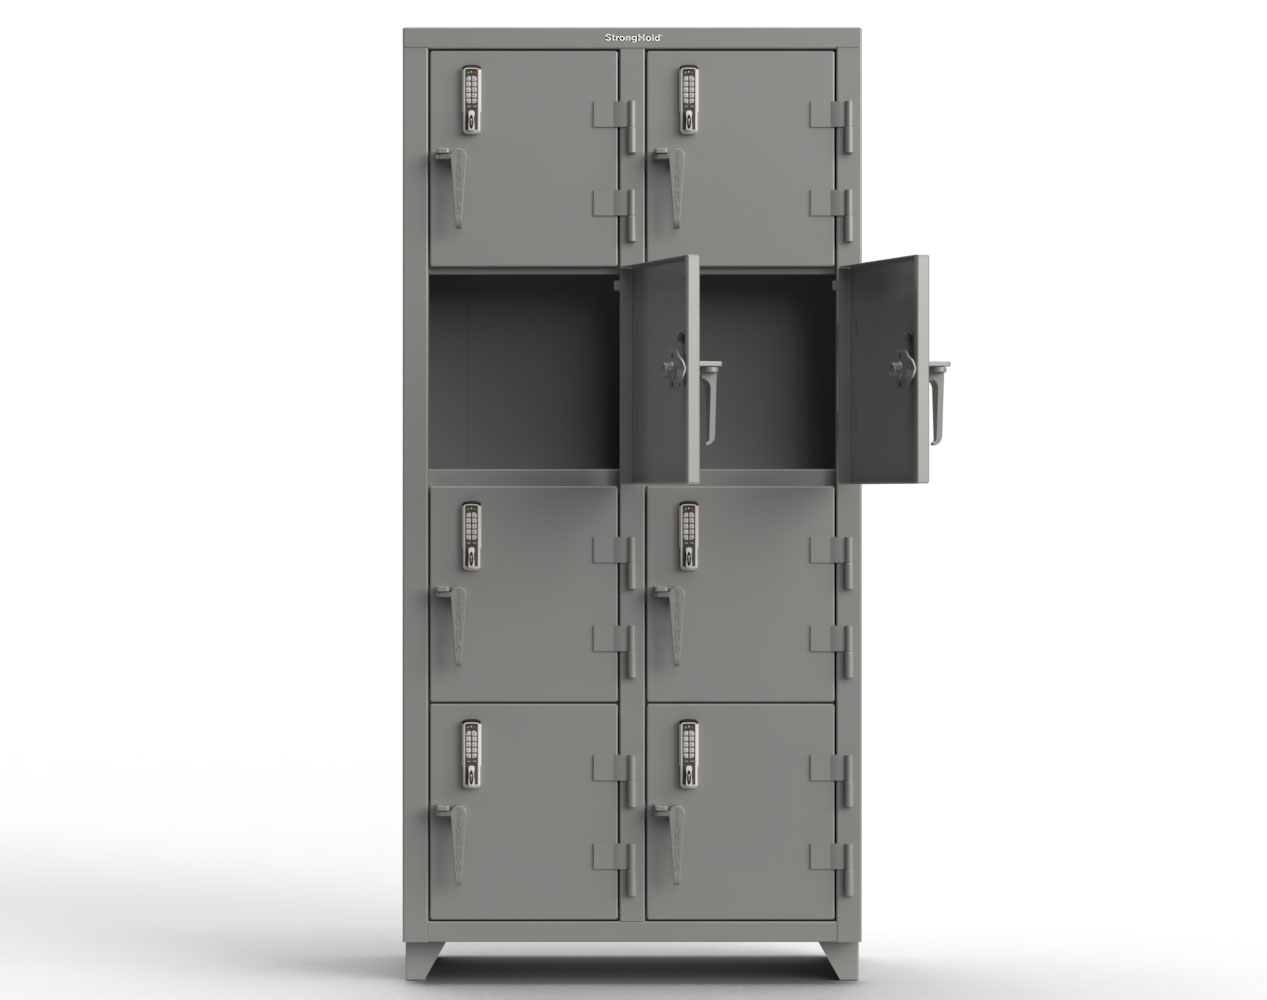 Extra Heavy Duty 14 GA 4-Tier Locker with Keyless Entry Lock, 8 Compartments – 36 in. W x 18 in. D x 75 in. H